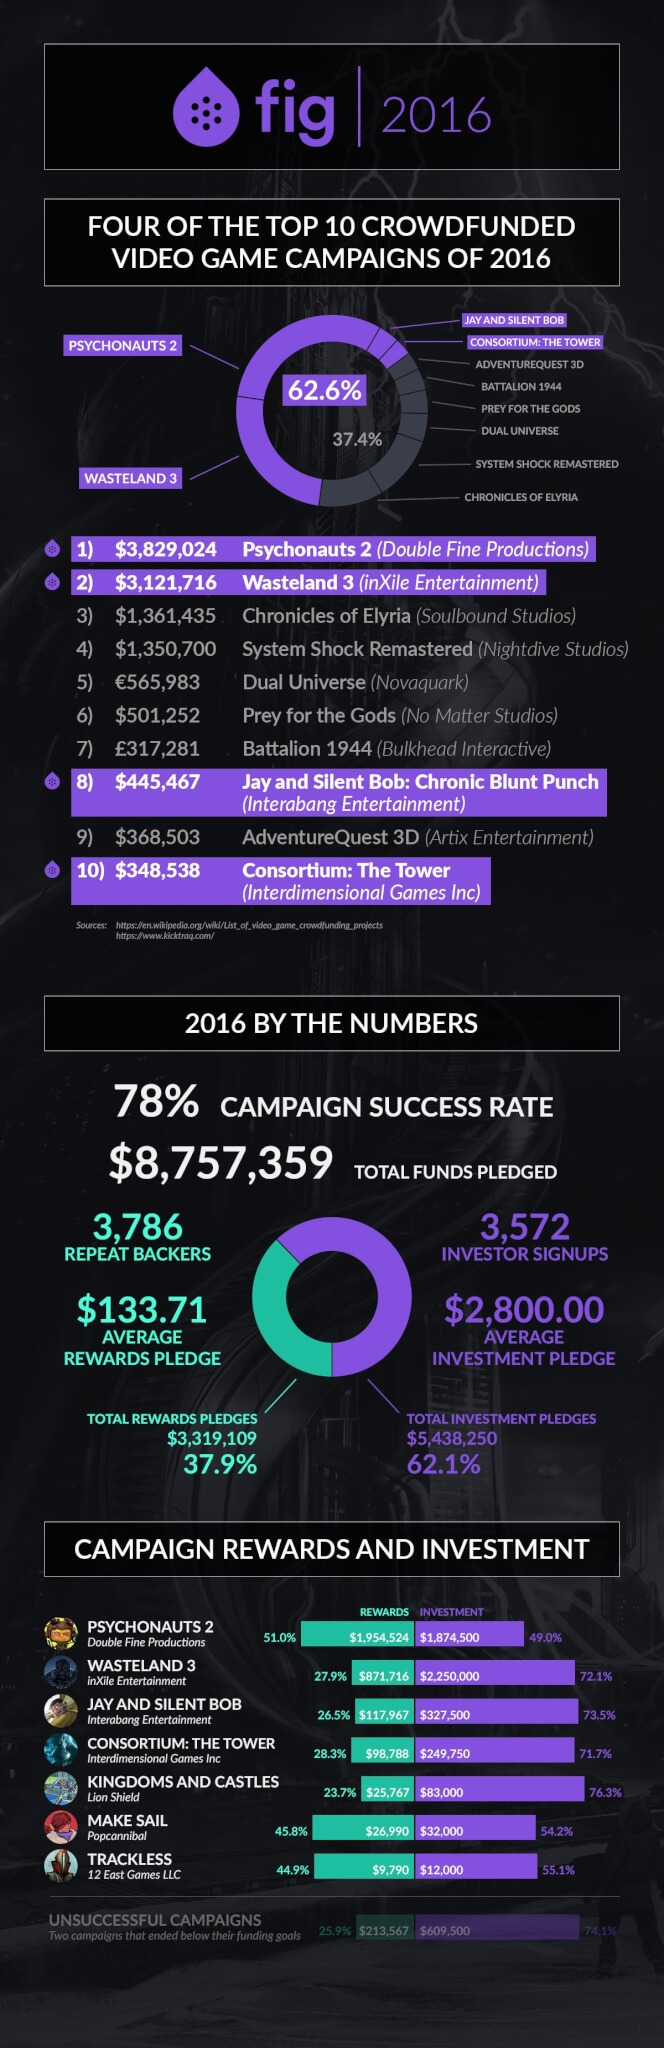 Fig's 2016 infographic